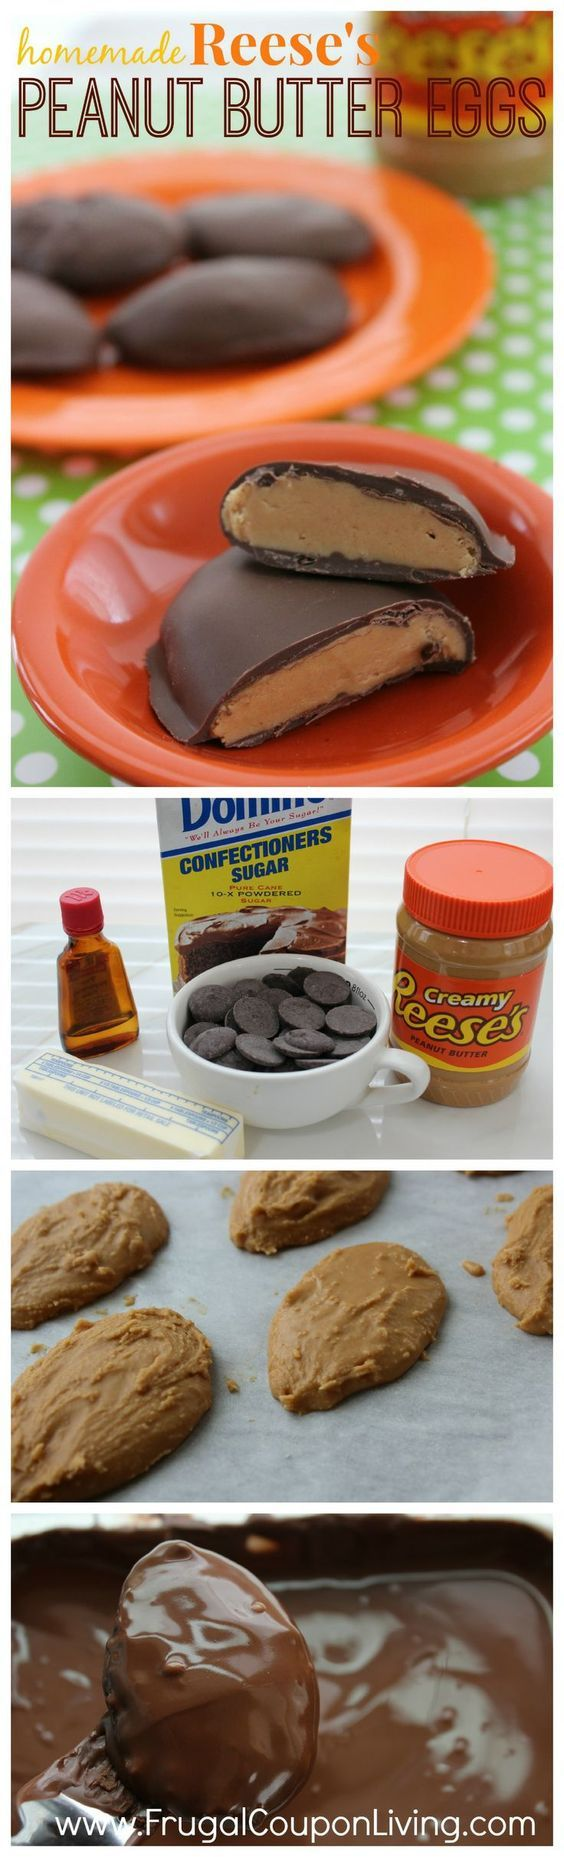 Homemade Reese's Egg Recipe – Peanut Butter Chocolate Covered Candy on Frugal Coupon Living. Easter Dessert Idea.